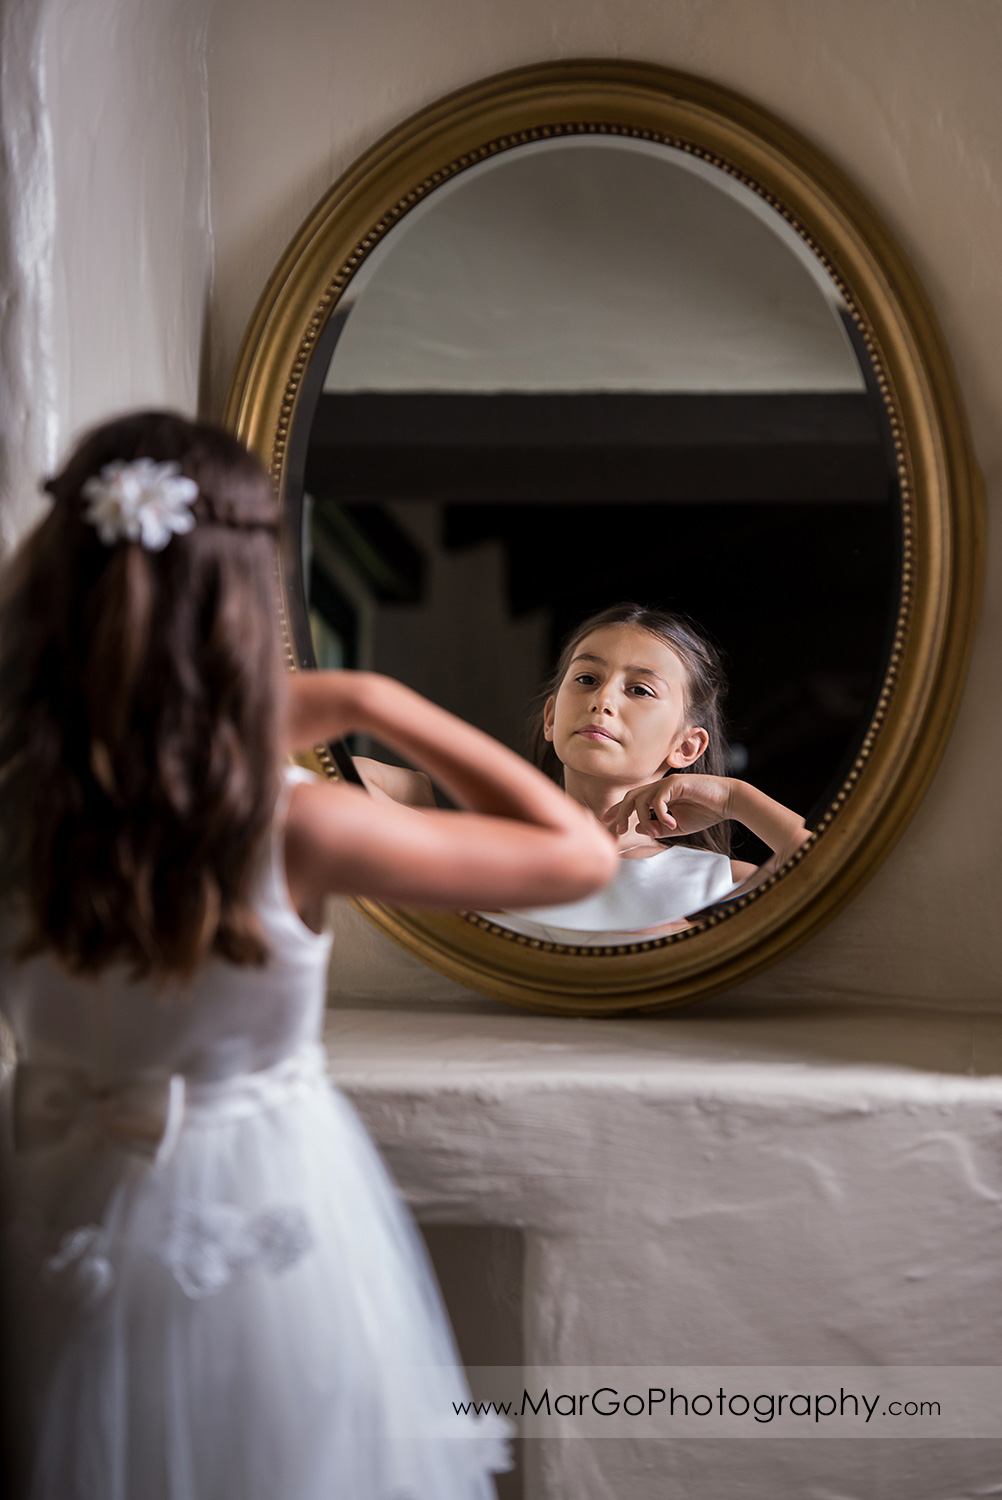 first communion girl in white dress looking in the mirror at Cafe Wisteria in Menlo Park